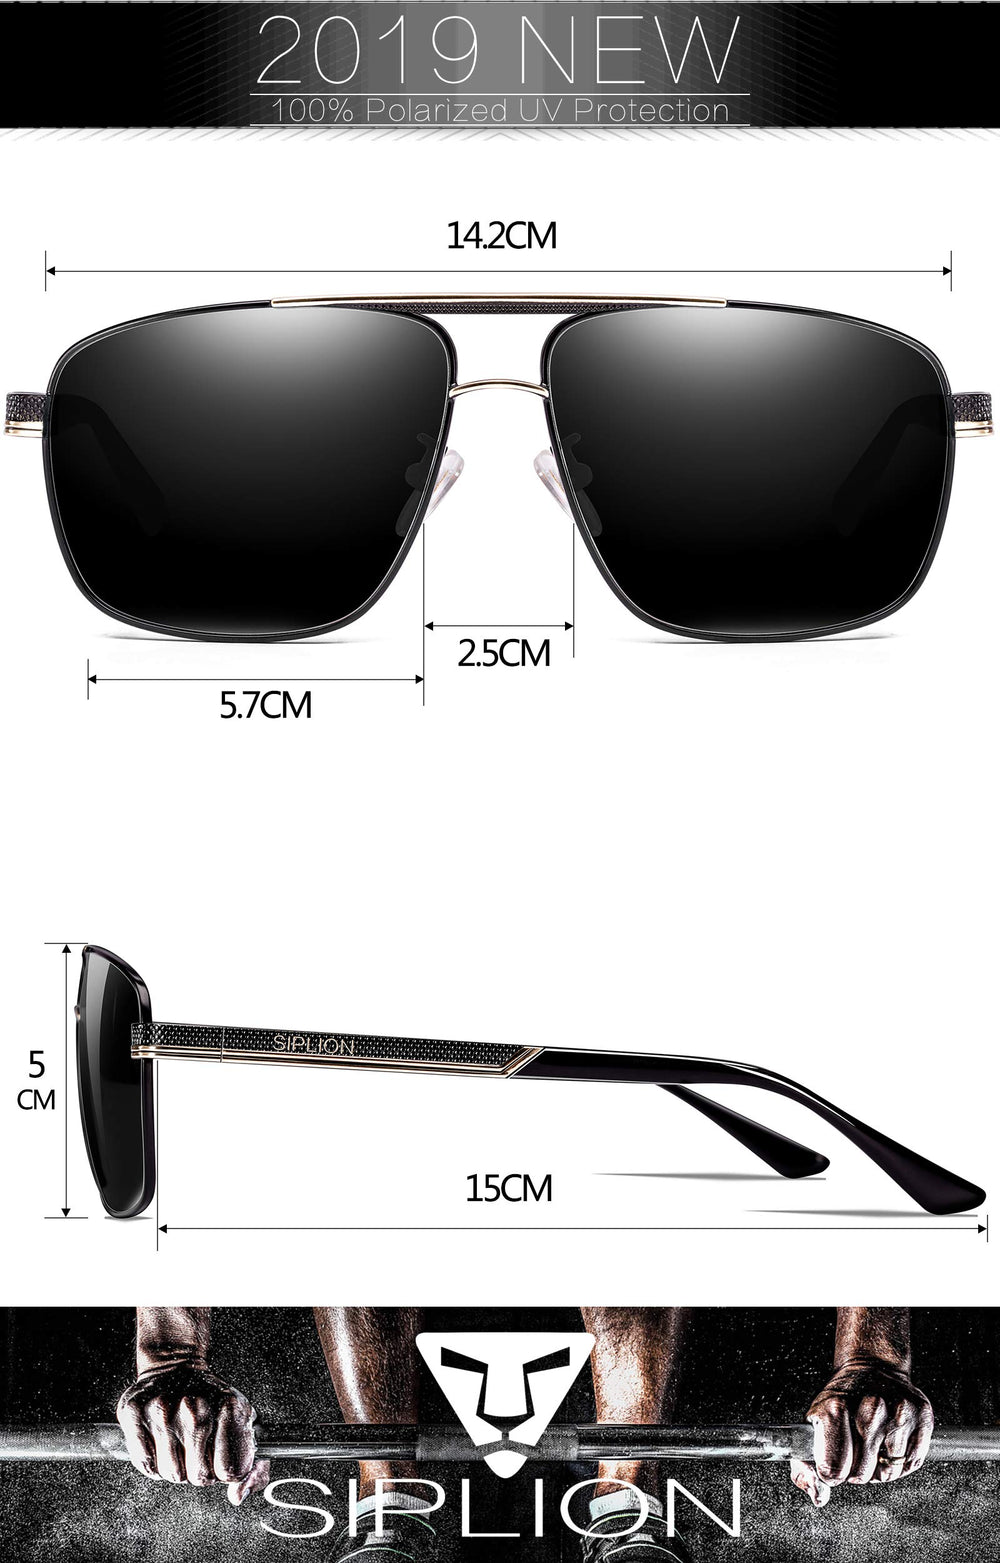 SIPLION Stylish Men's Driving Polarized Sunglasses - Shade & watches